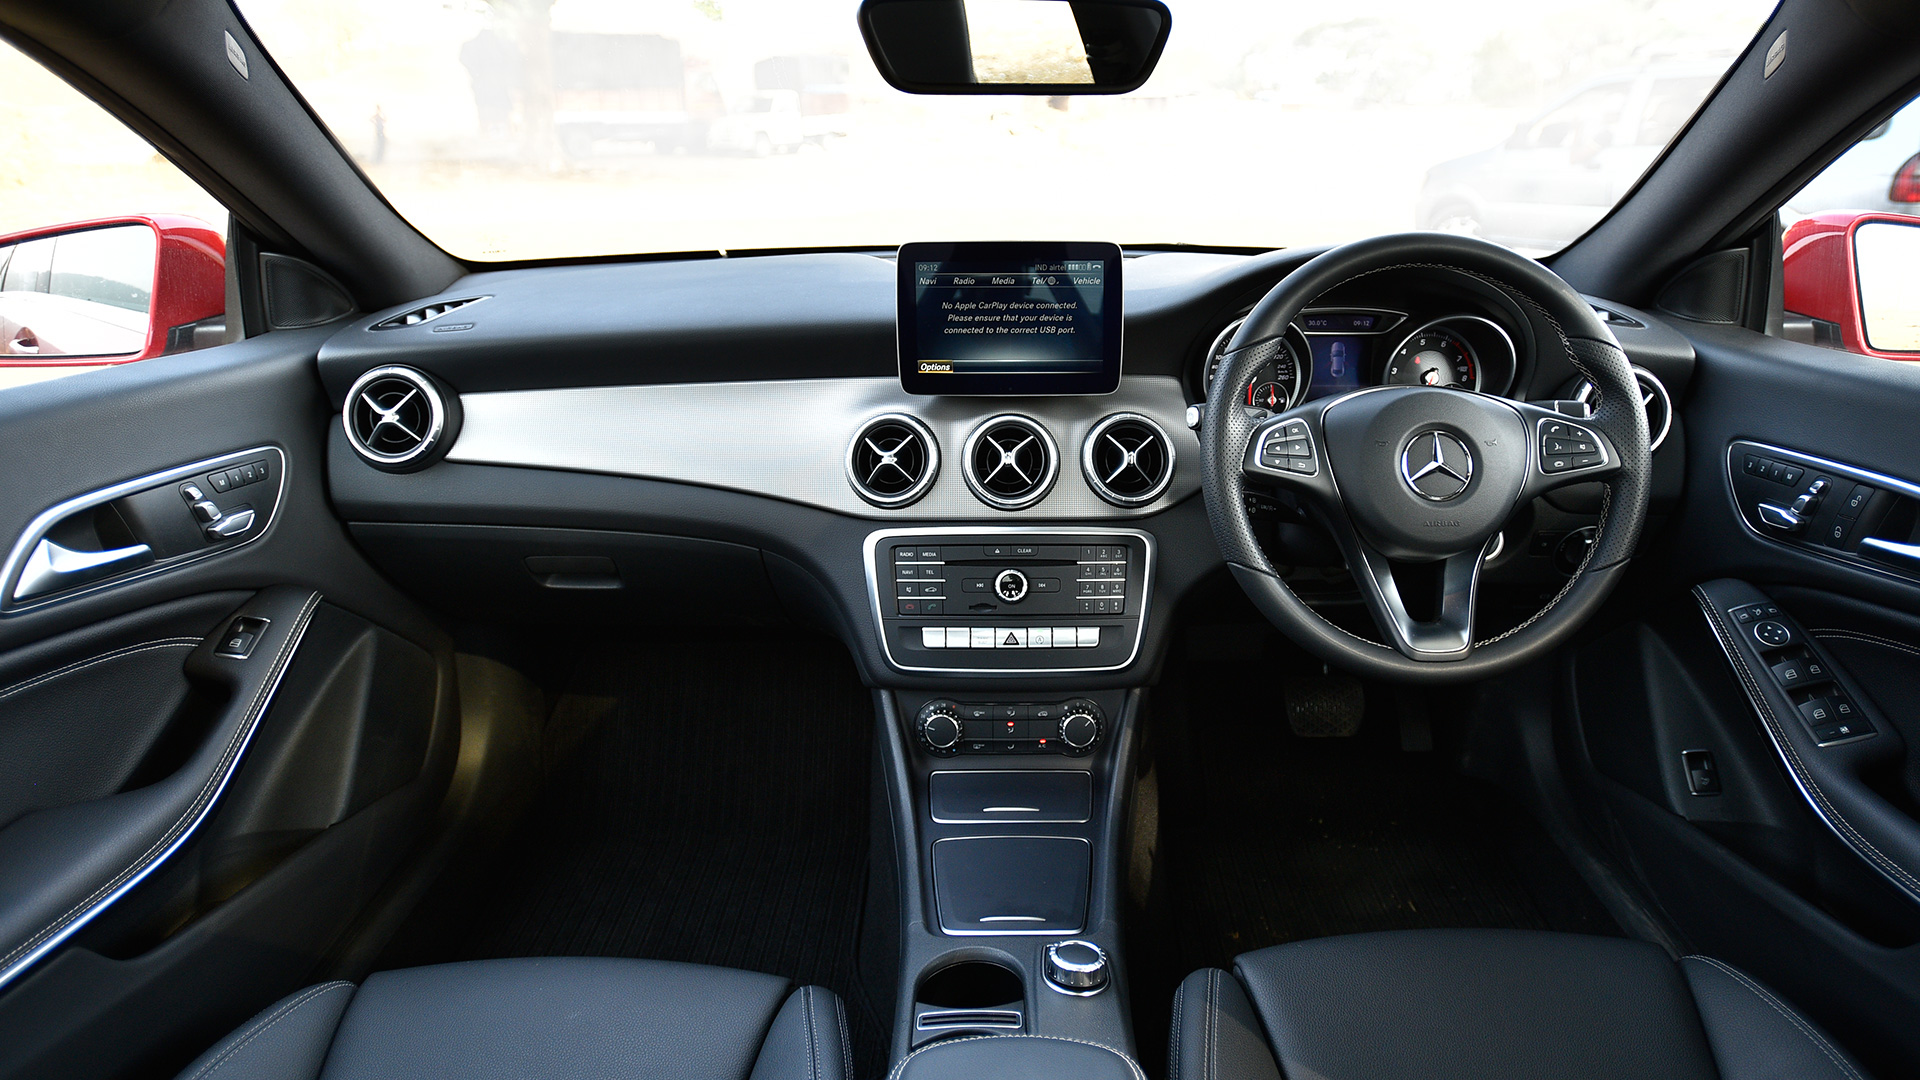 Mercedes benz cla 2018 price mileage reviews for Mercedes benz cla 2018 price